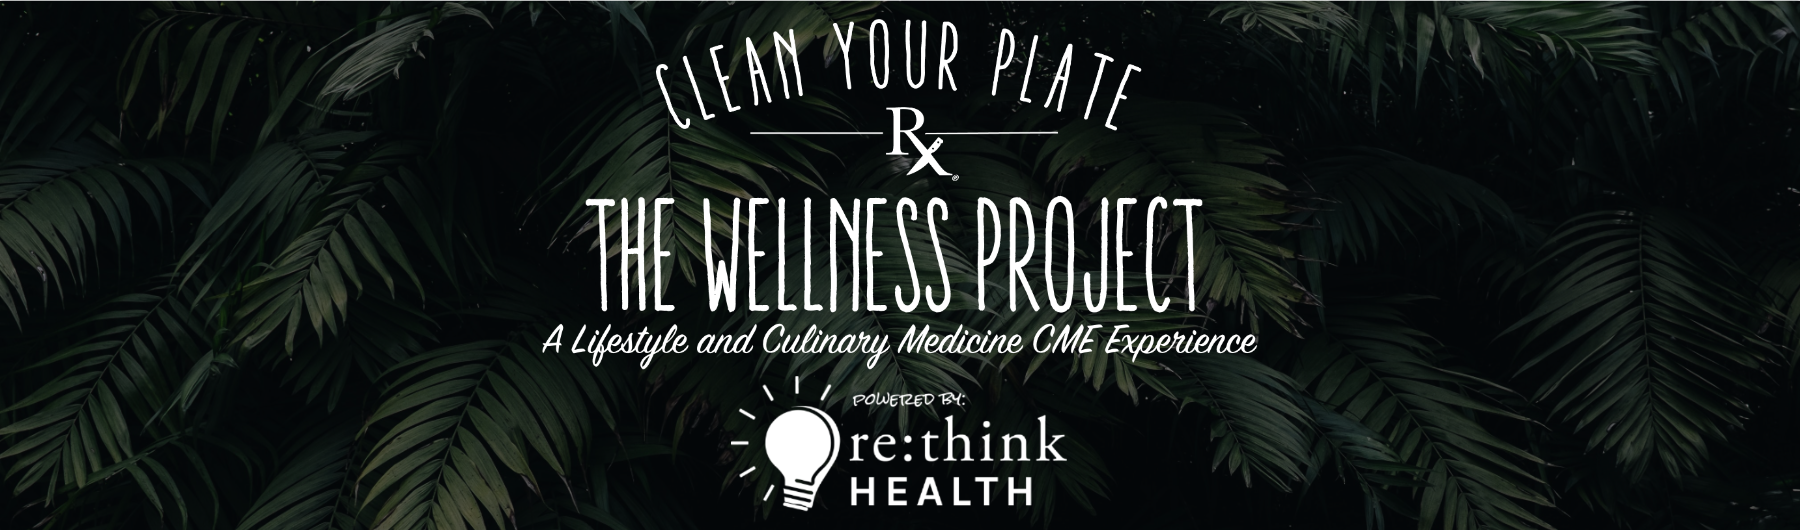 the-wellness-project-tito-banner